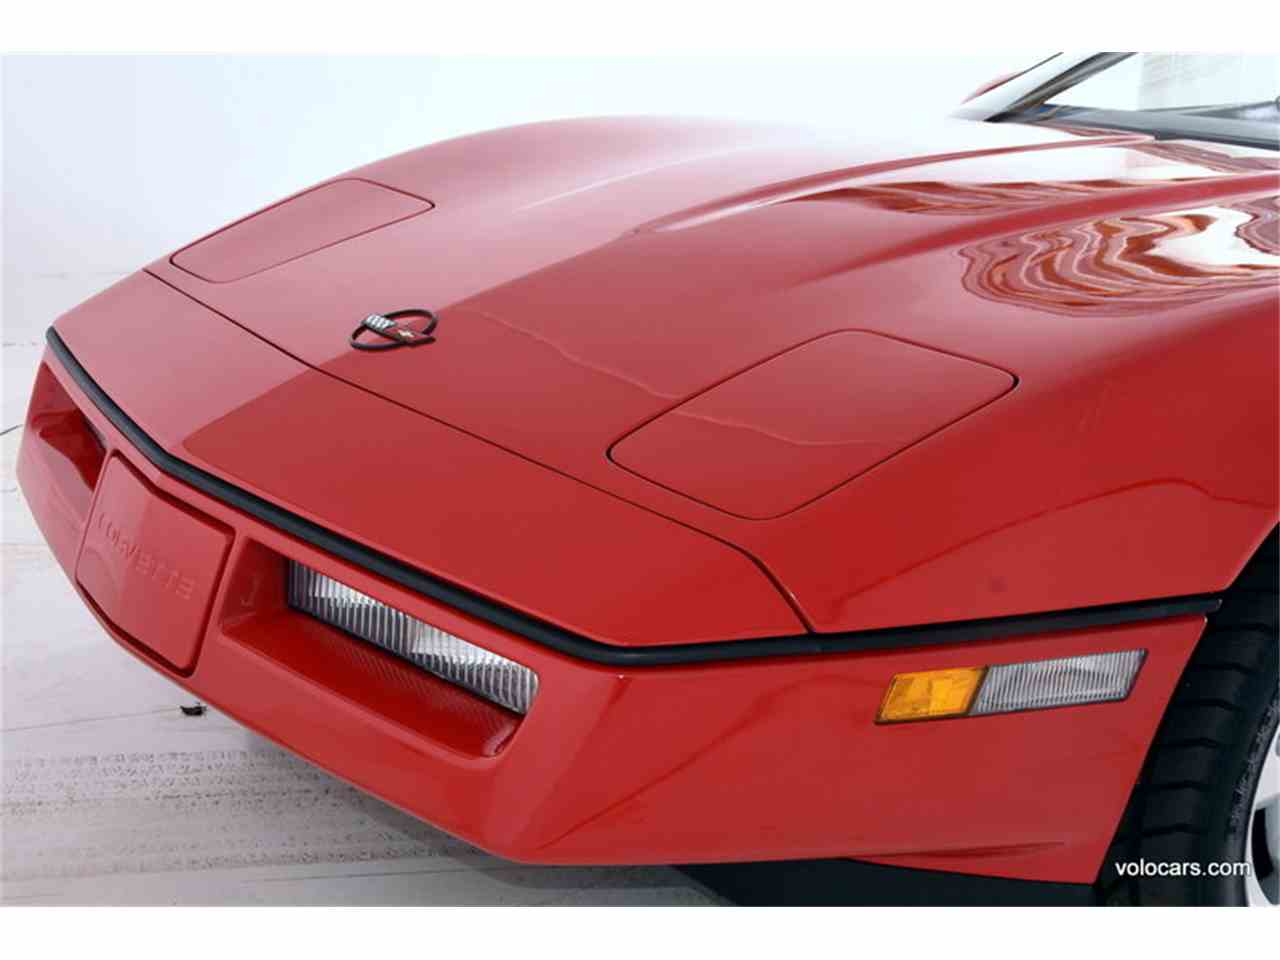 Large Picture of 1989 Chevrolet Corvette located in Illinois - MDVF